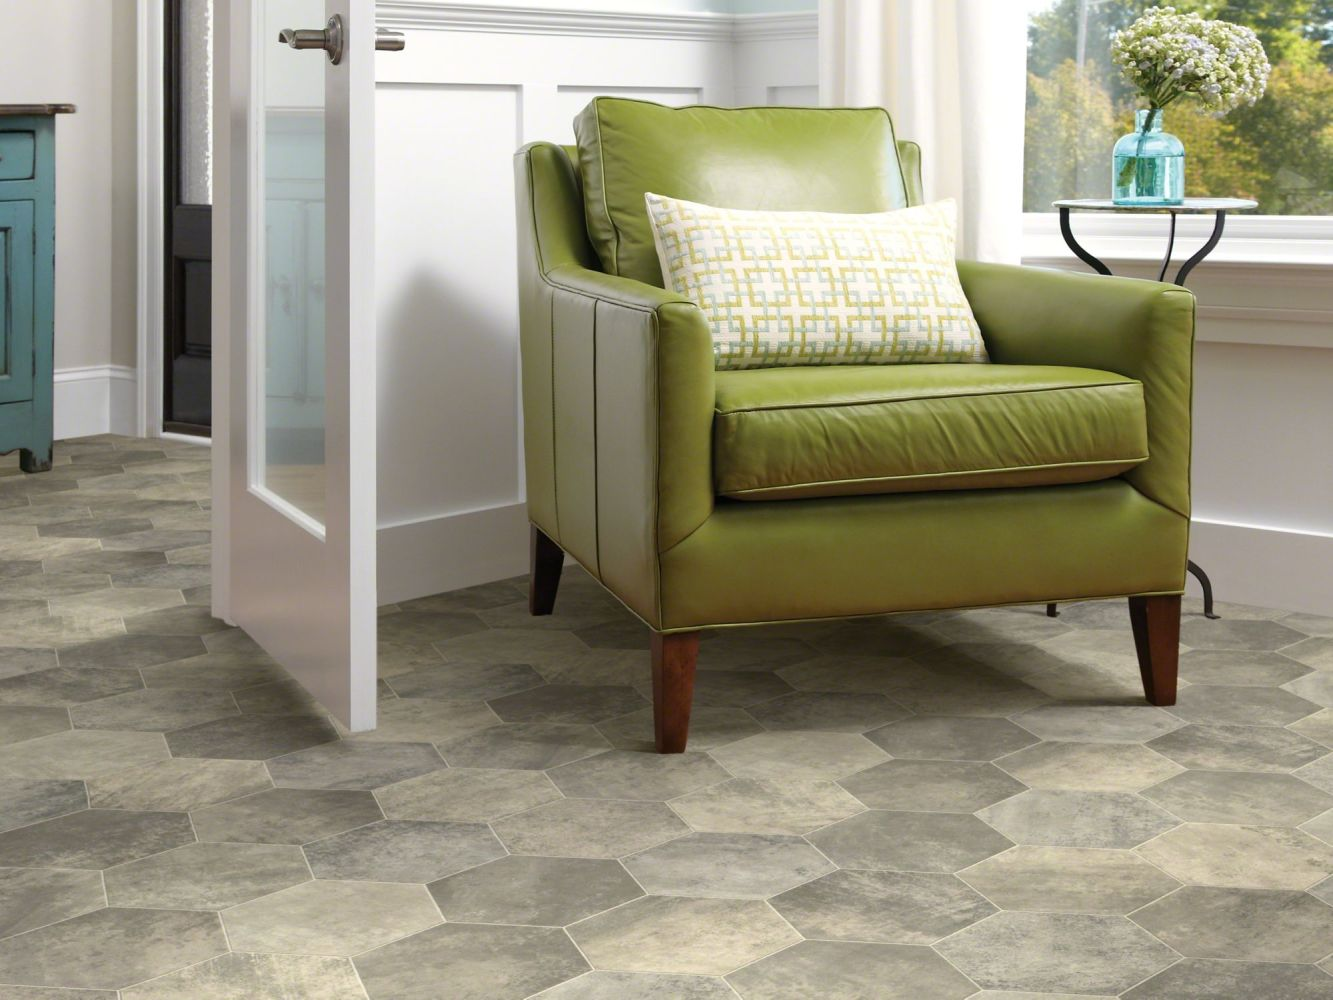 Shaw Floors Vinyl Residential Apollo Troy 00524_0614V